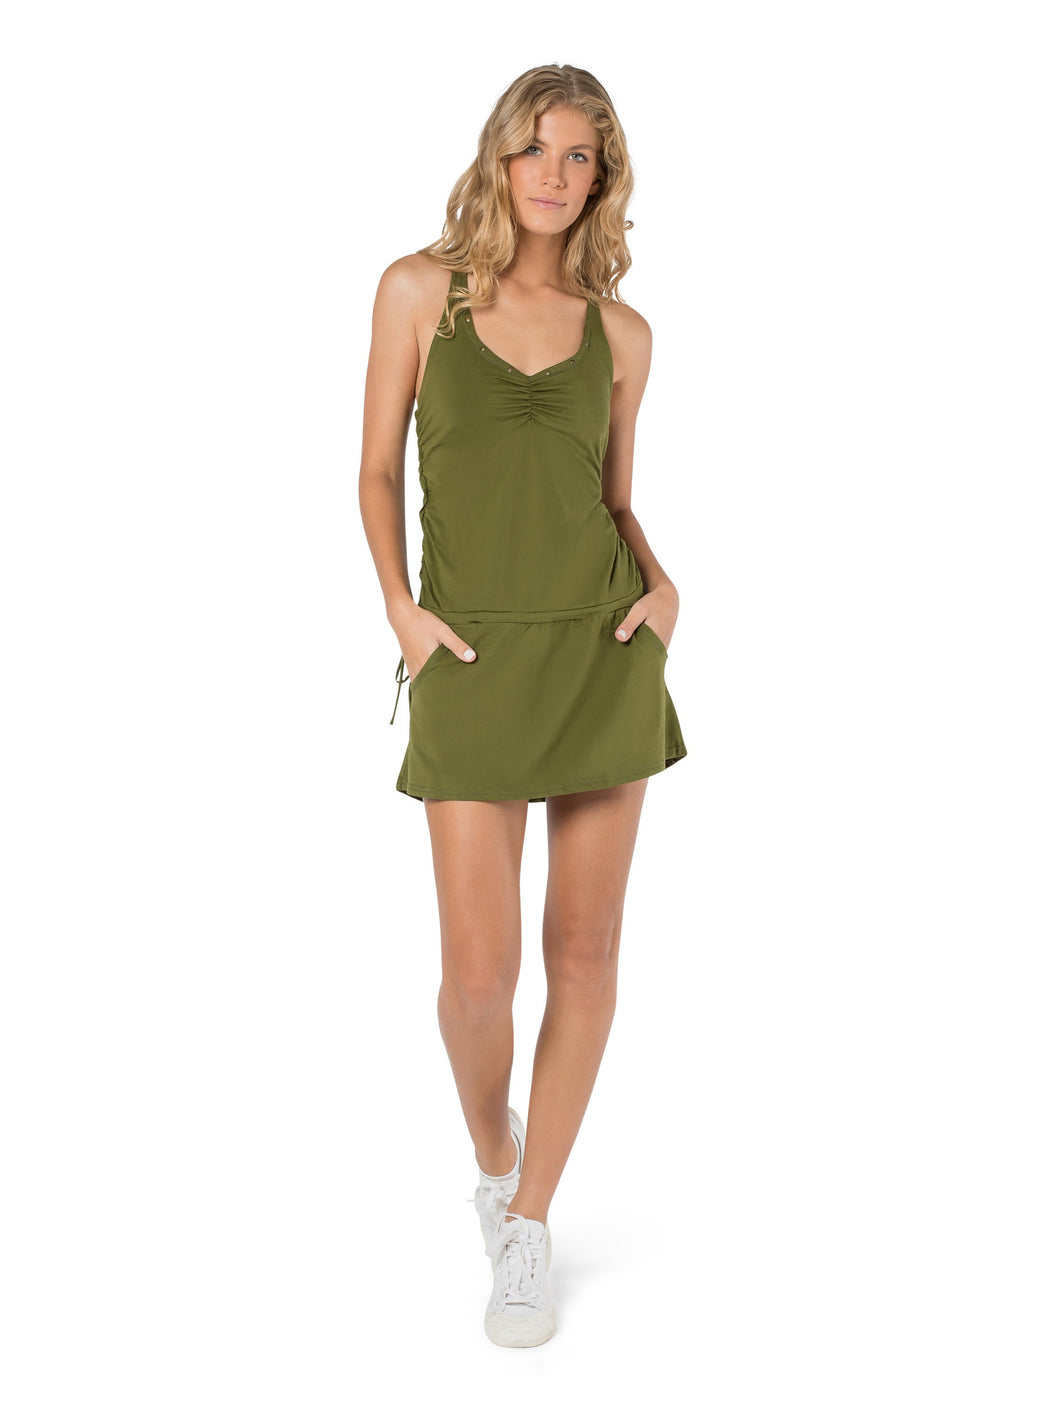 Dress for Women, Mini Dress, Boho Dress, Pixie Dress, Festival Clothes, Tank Dress, Hippie Fashion, Green Dress, Open Back Tank, Sexy Tunic